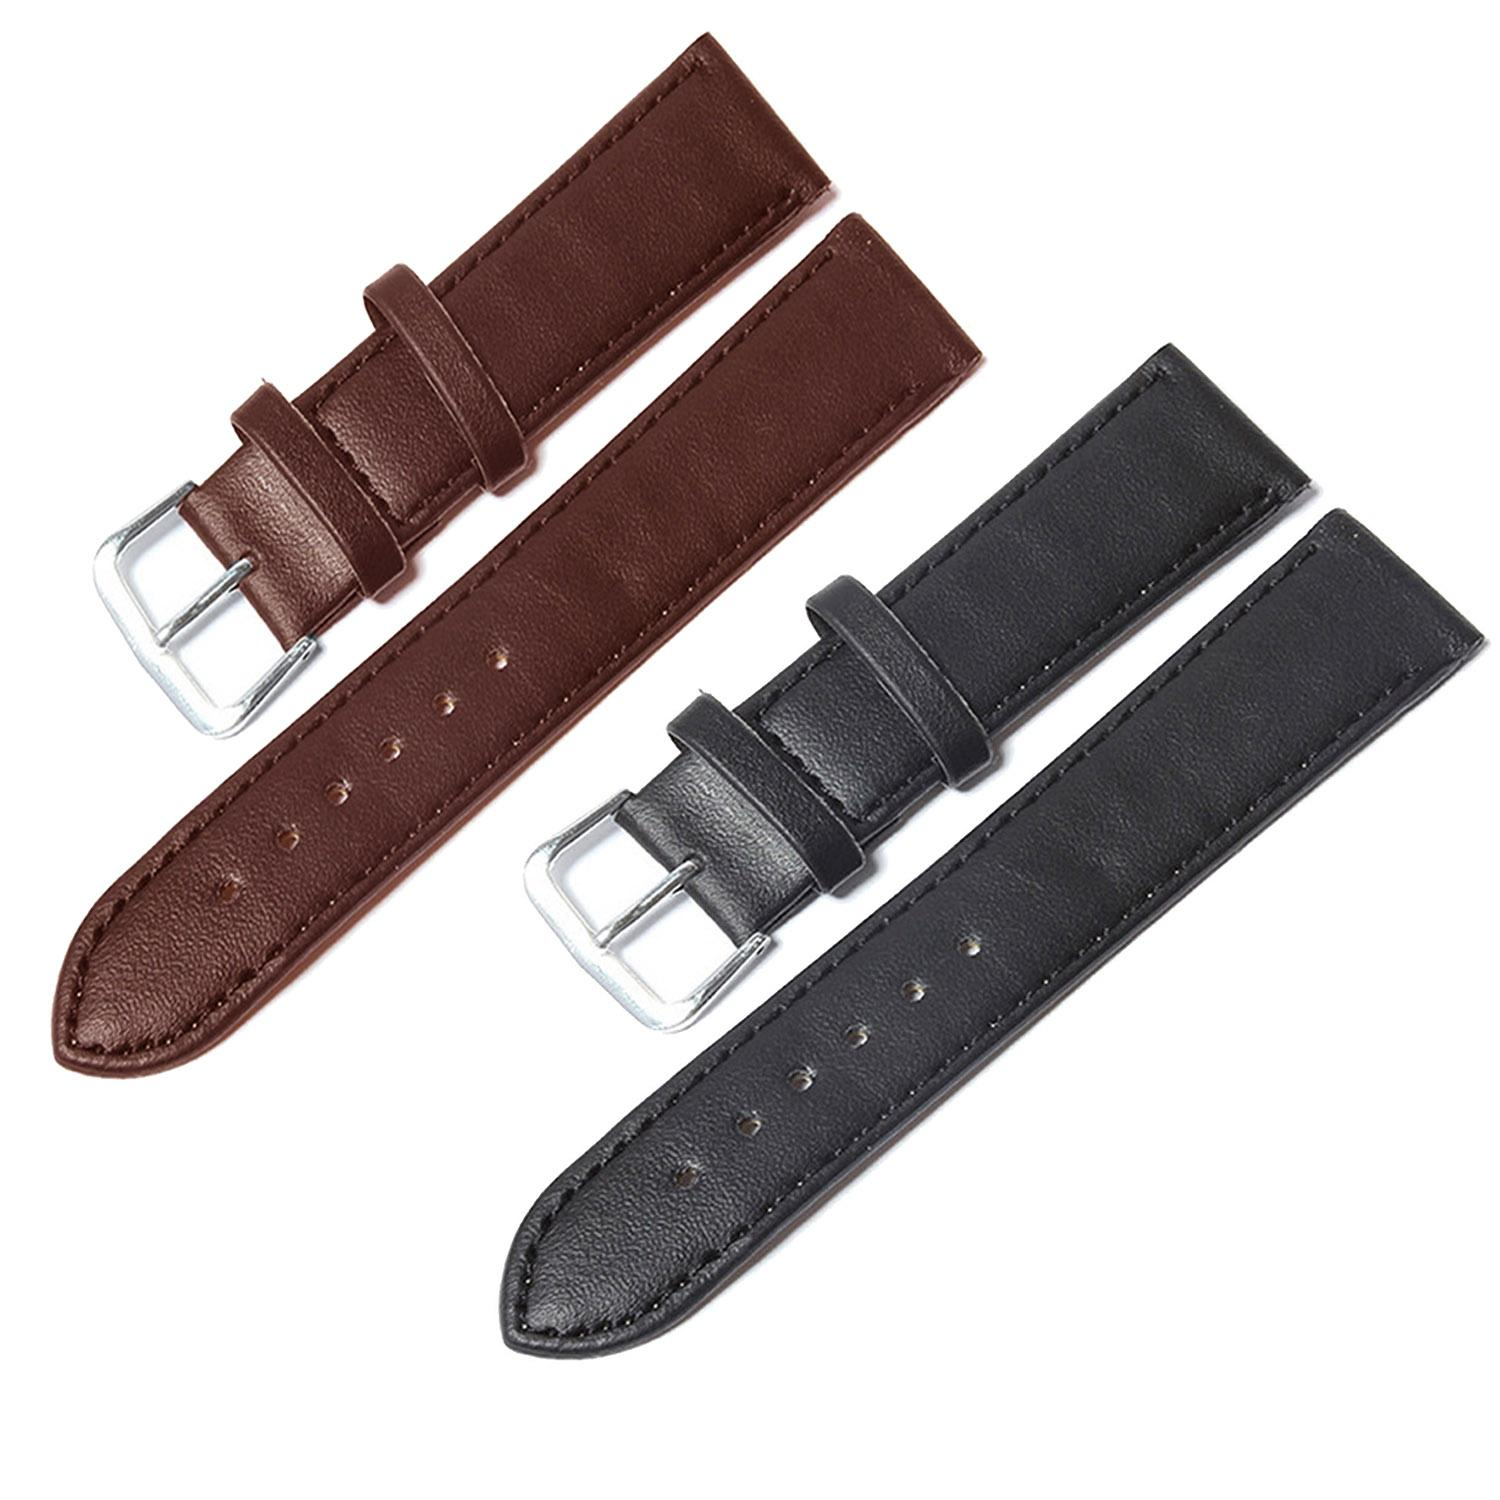 2 Pcs  Thin PU Leather Adjustable Replacement Watchband Watch Band Strap Belt for 20mm Watch Lug Black + Brown Malaysia